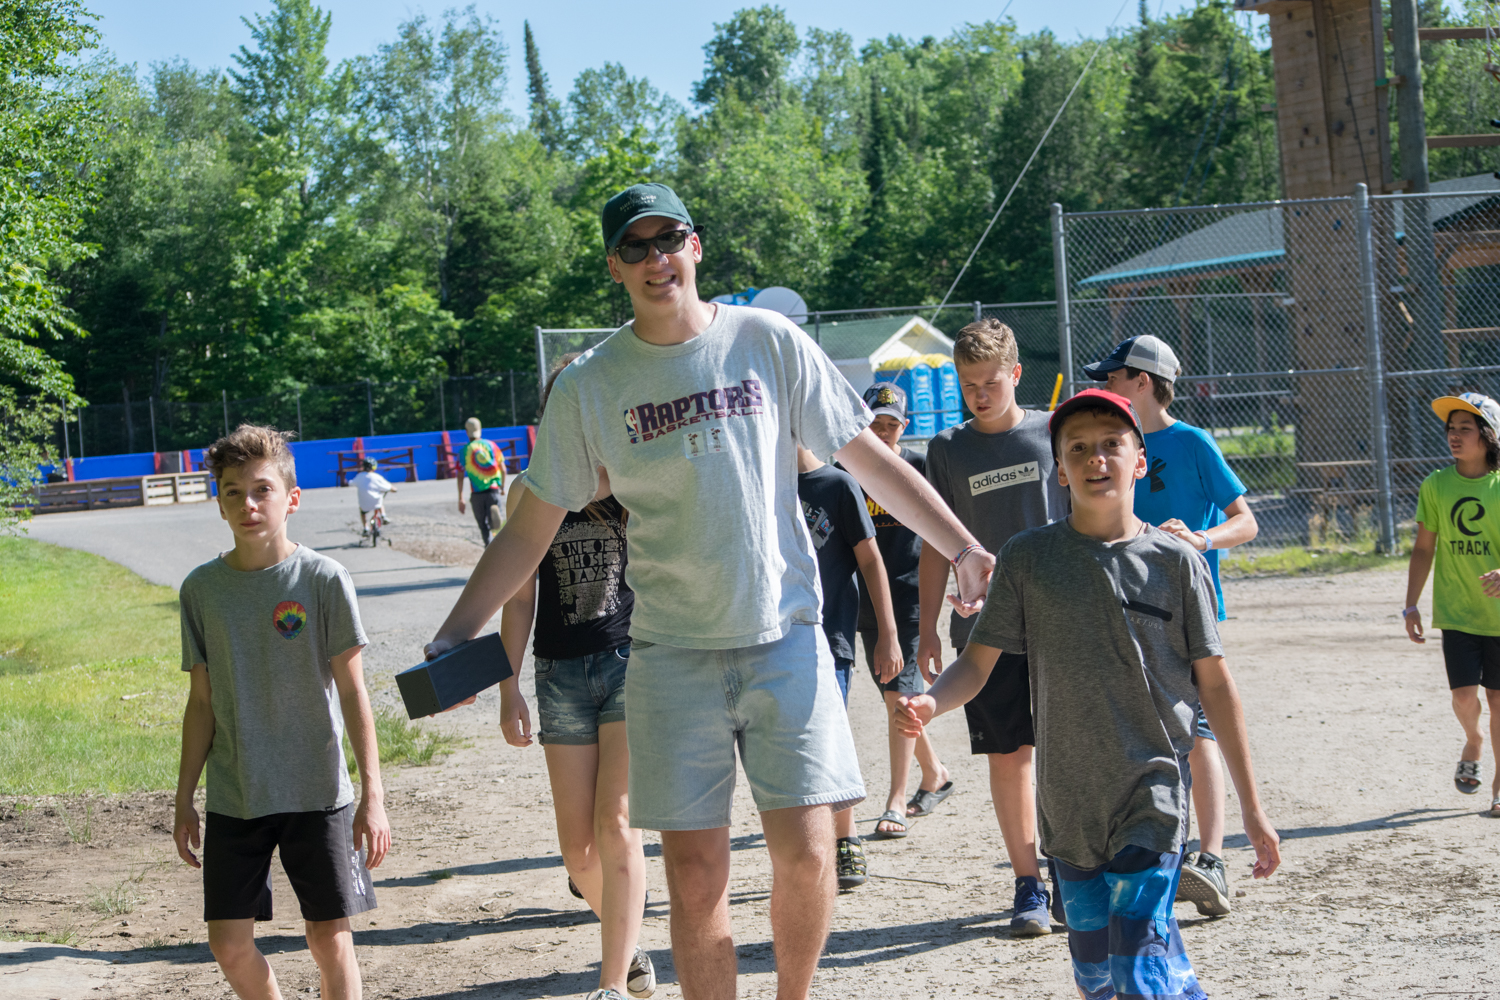 Activity Instructor, Summer Camp Ontario